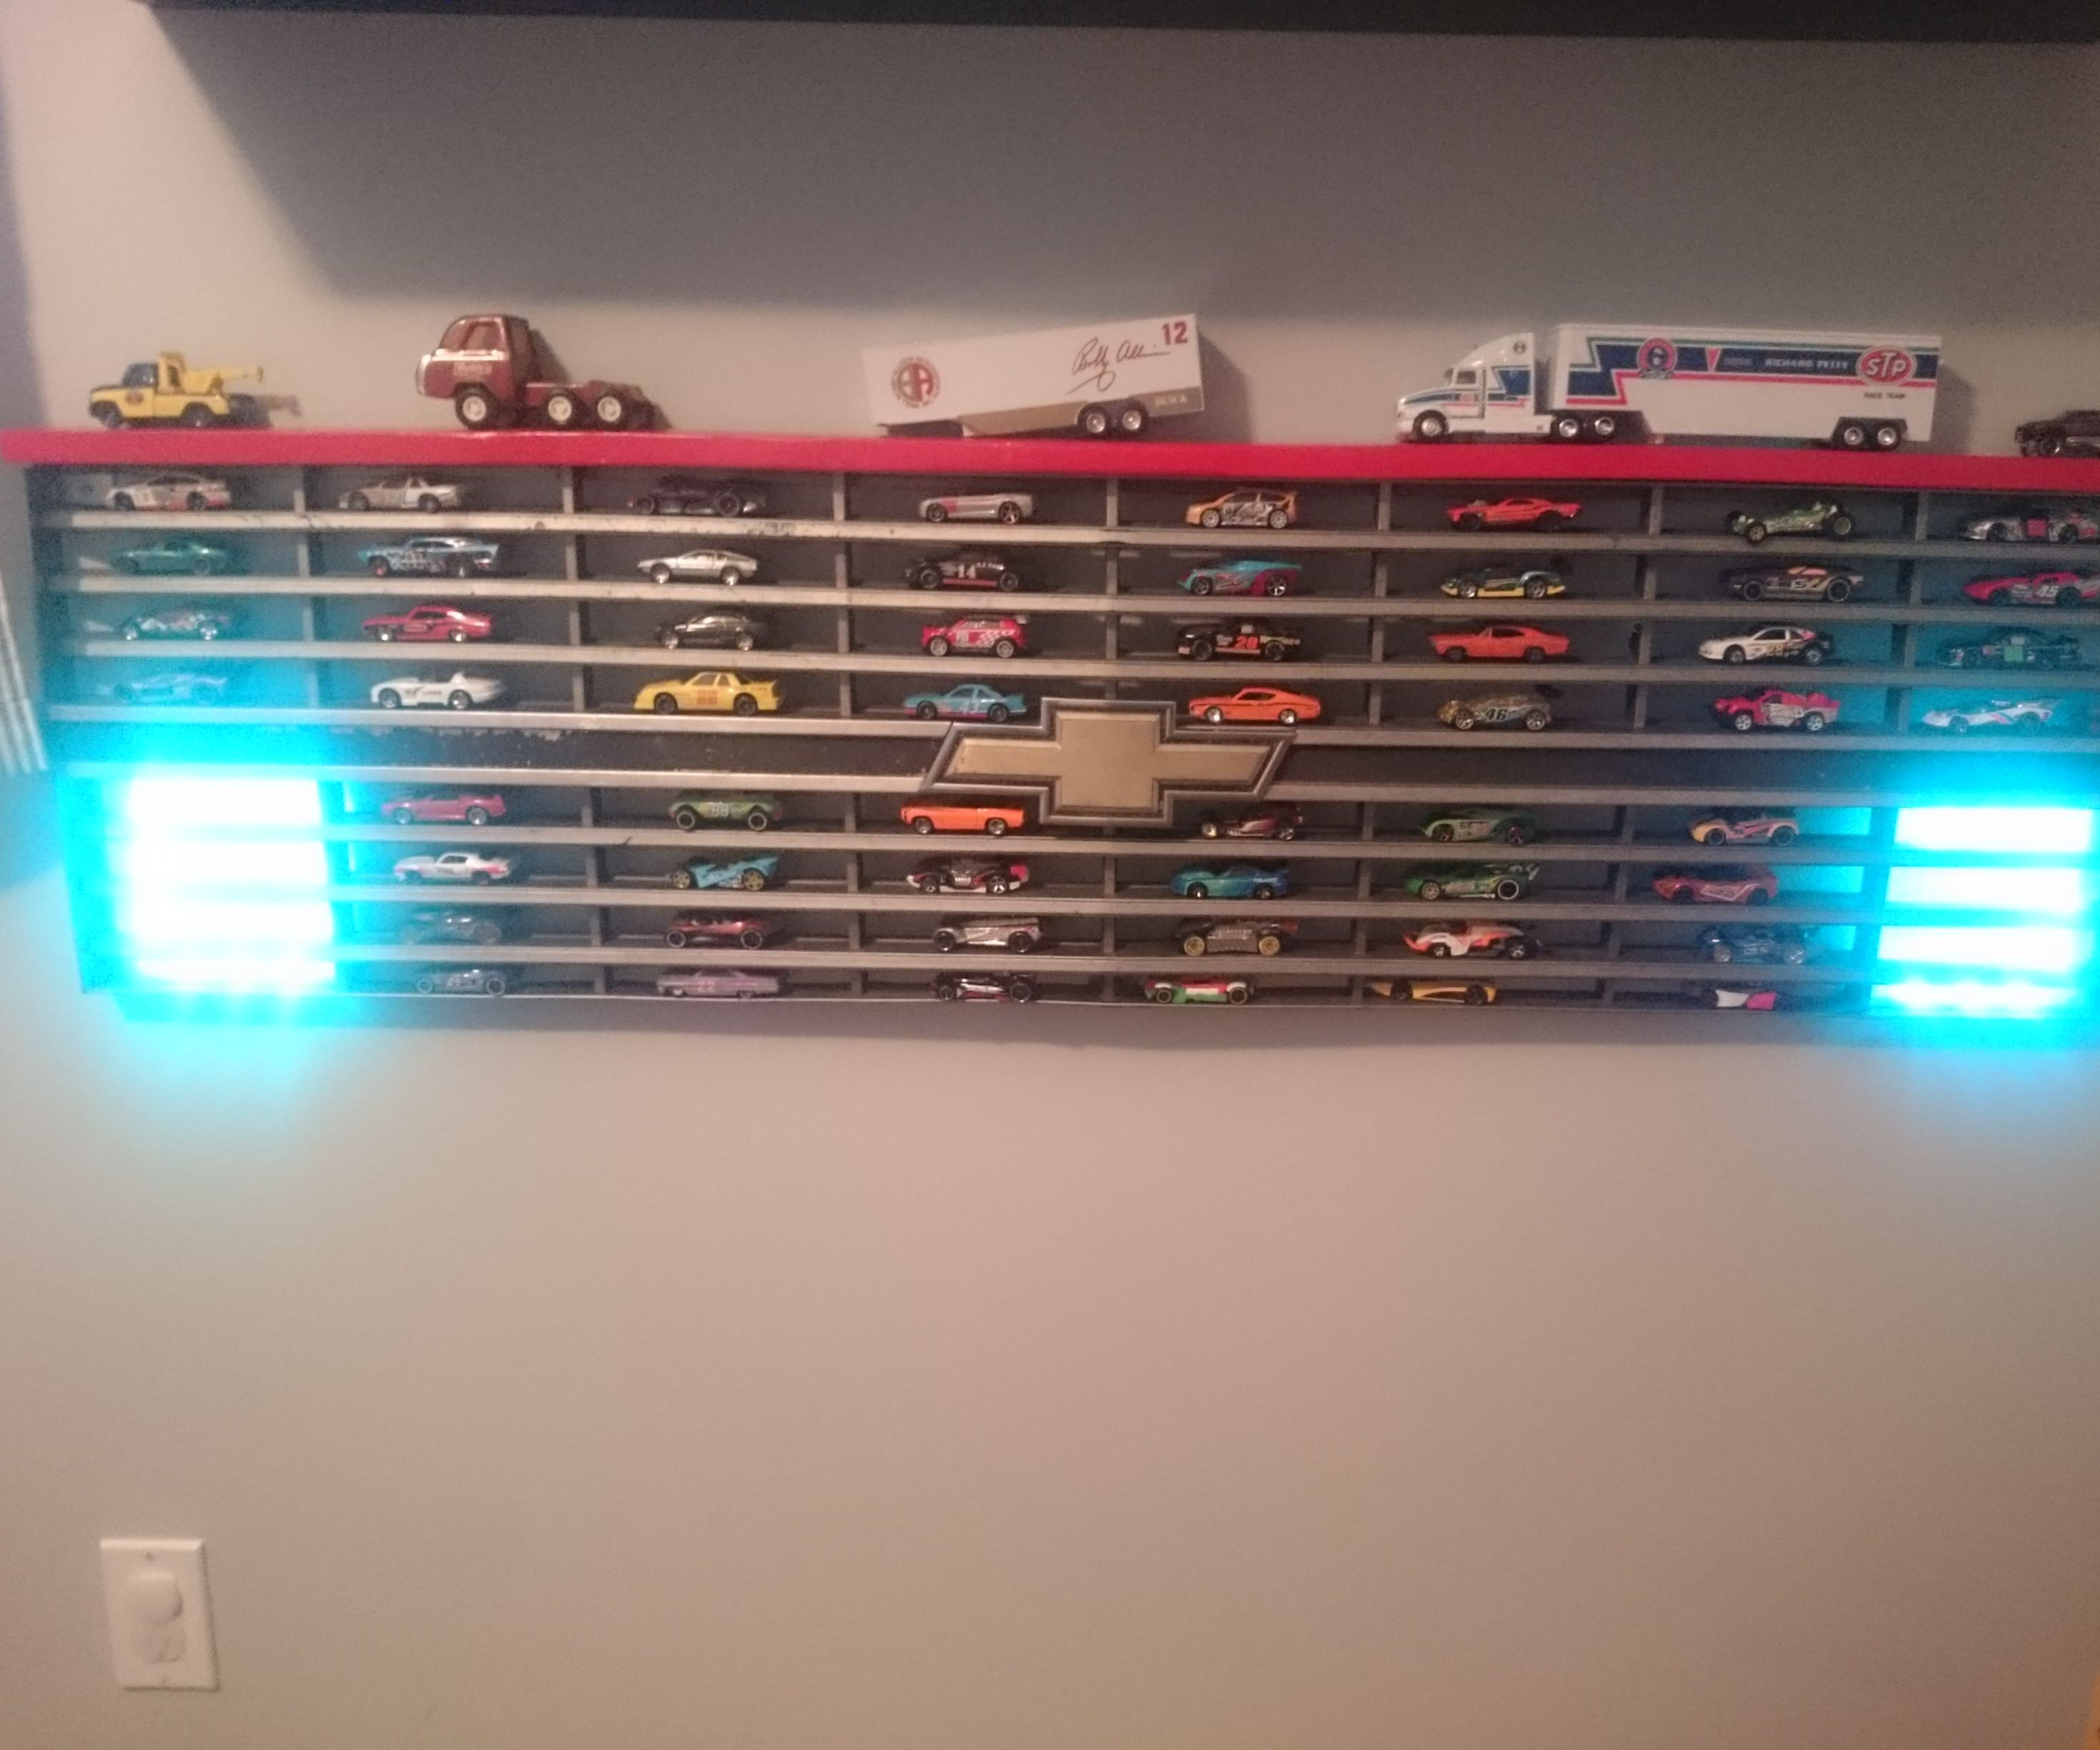 Truck Grille Display Shelf